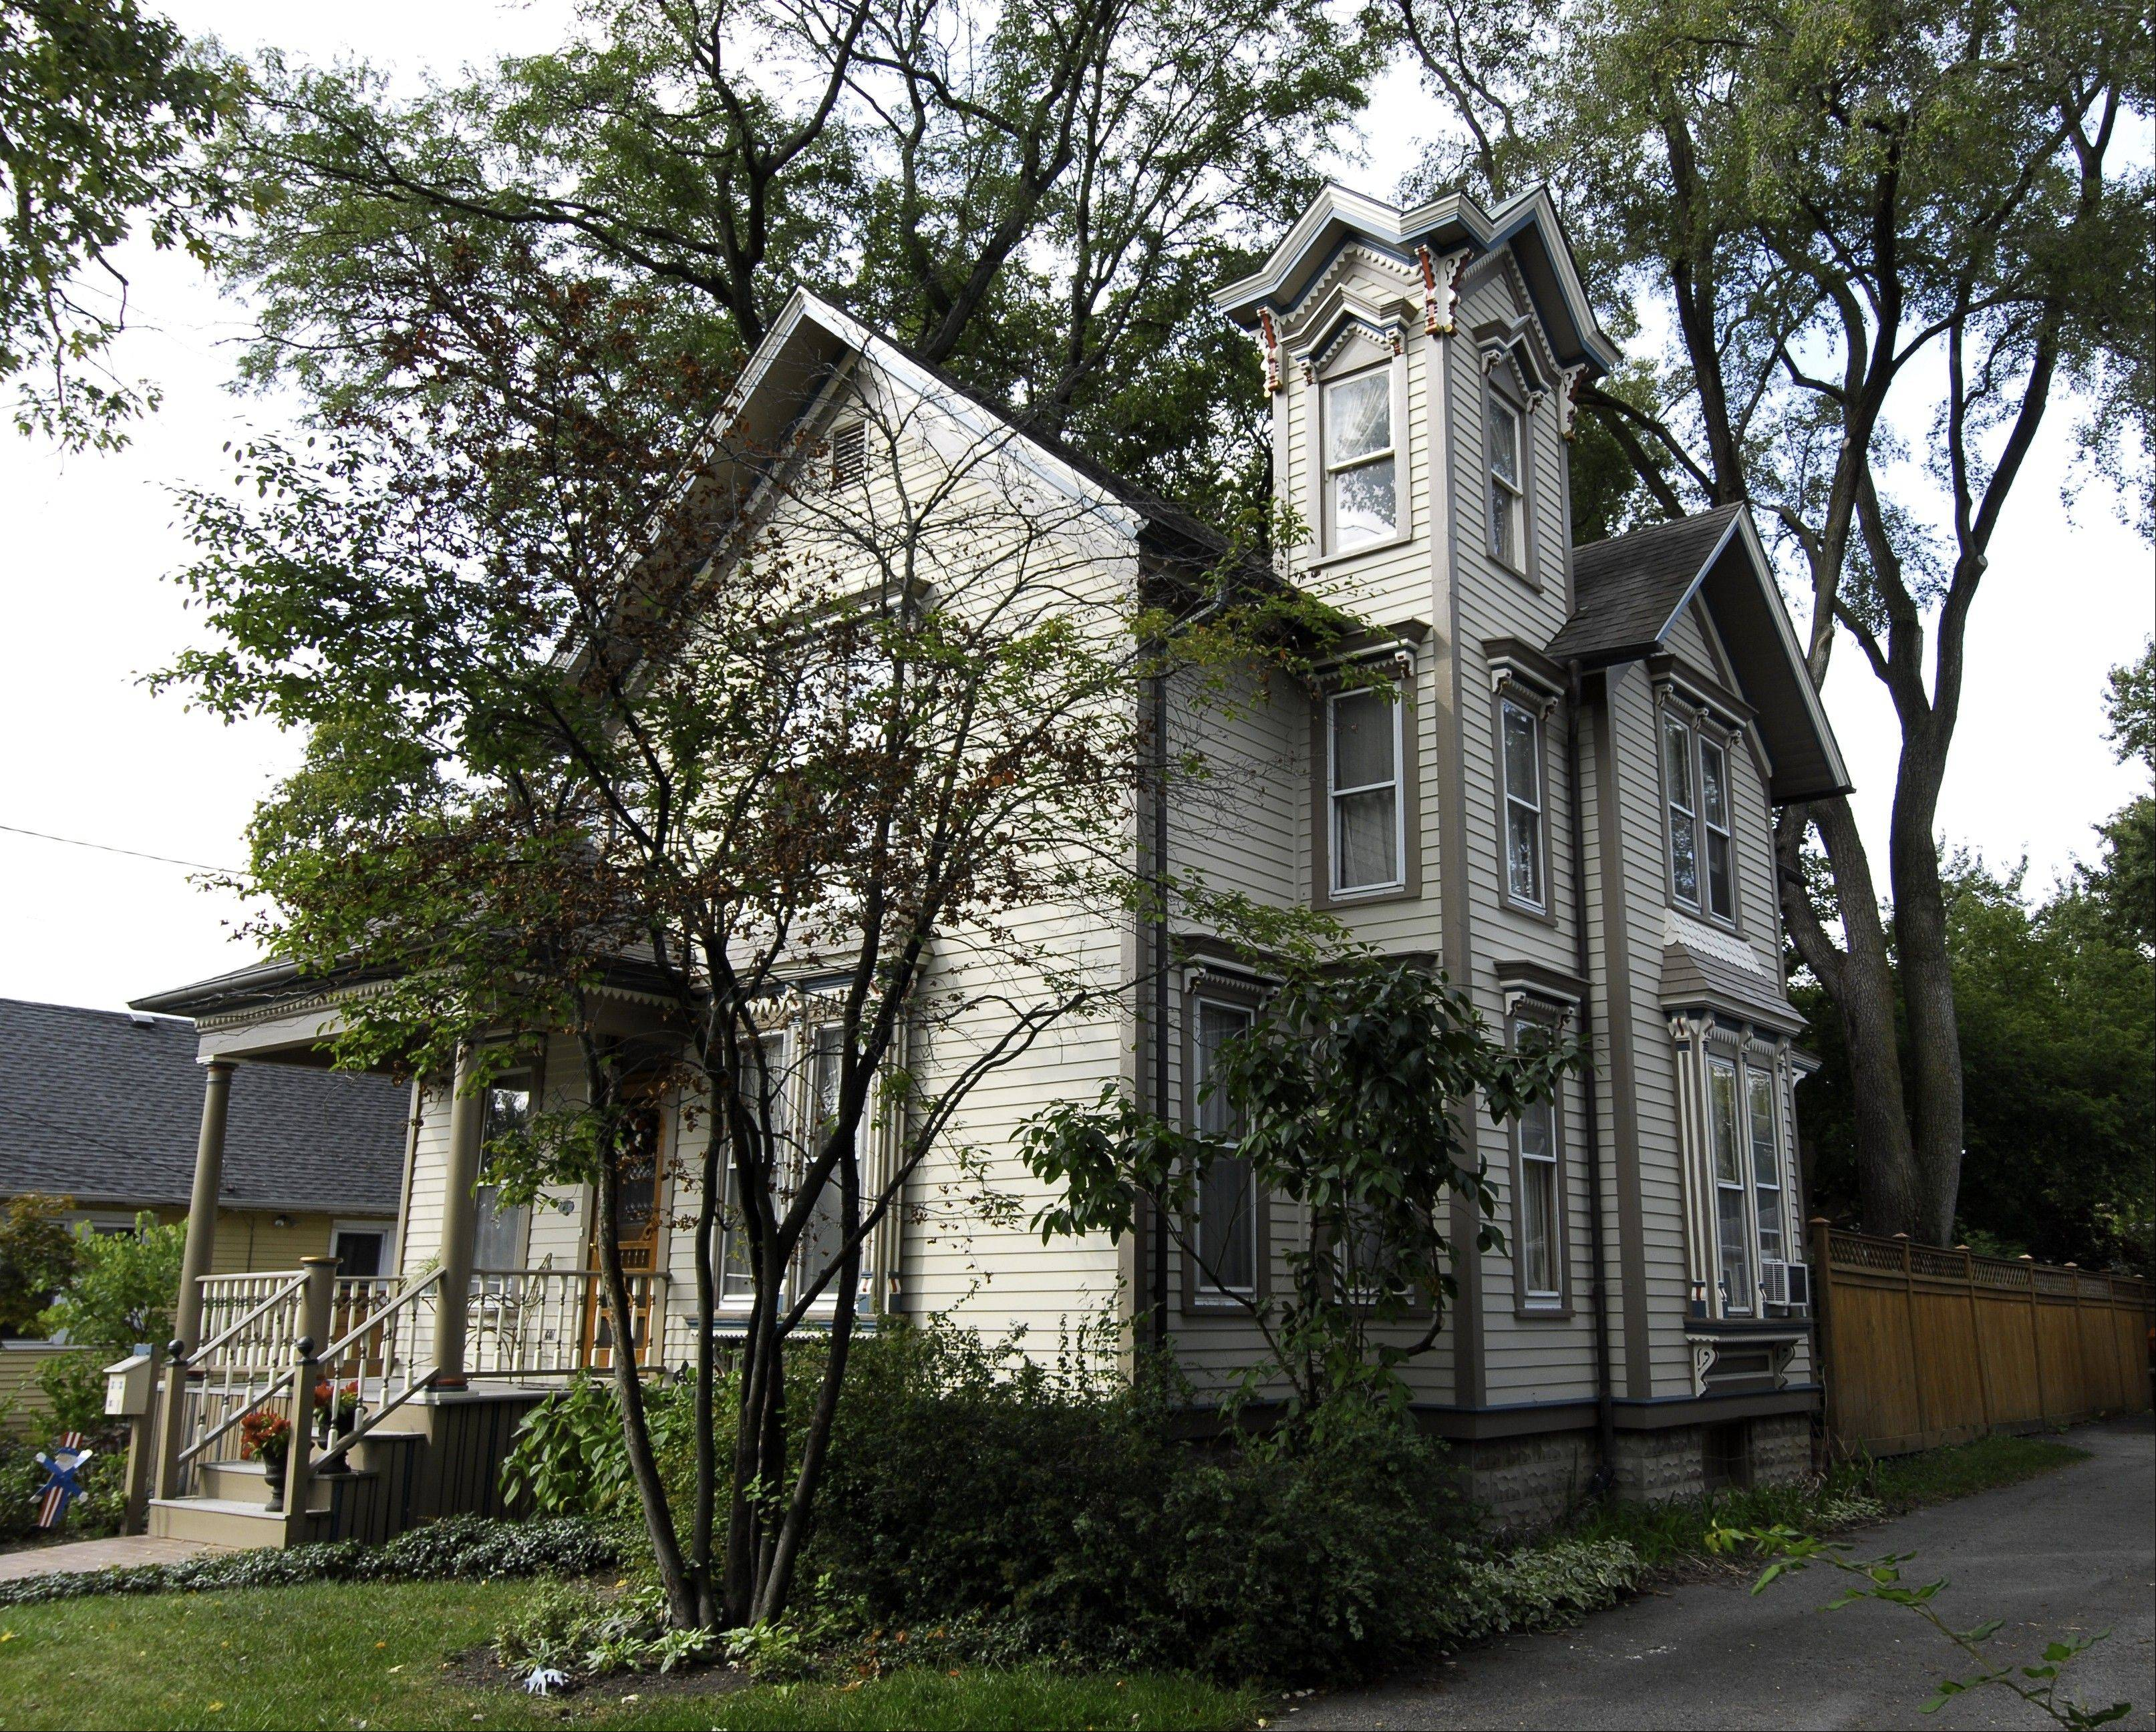 This Victorian home in Barrington won a grand prize in the Schaumburg-based Chicago Paint and Coatings Association's annual Painted Ladies competition in 2009.